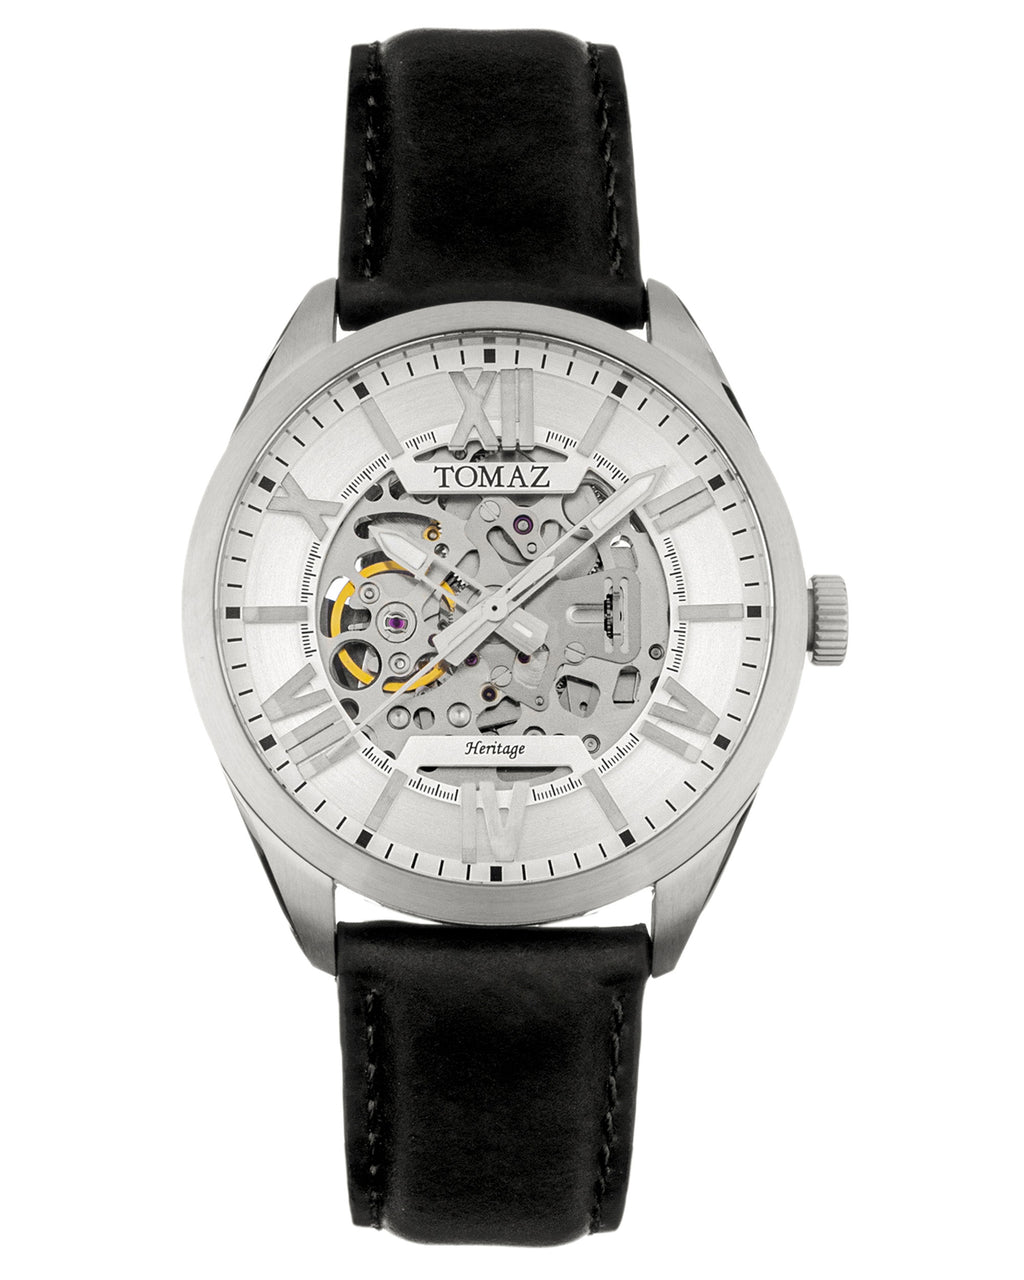 Tomaz Men's Watch TW007B (Silver/White) -2nd ver.